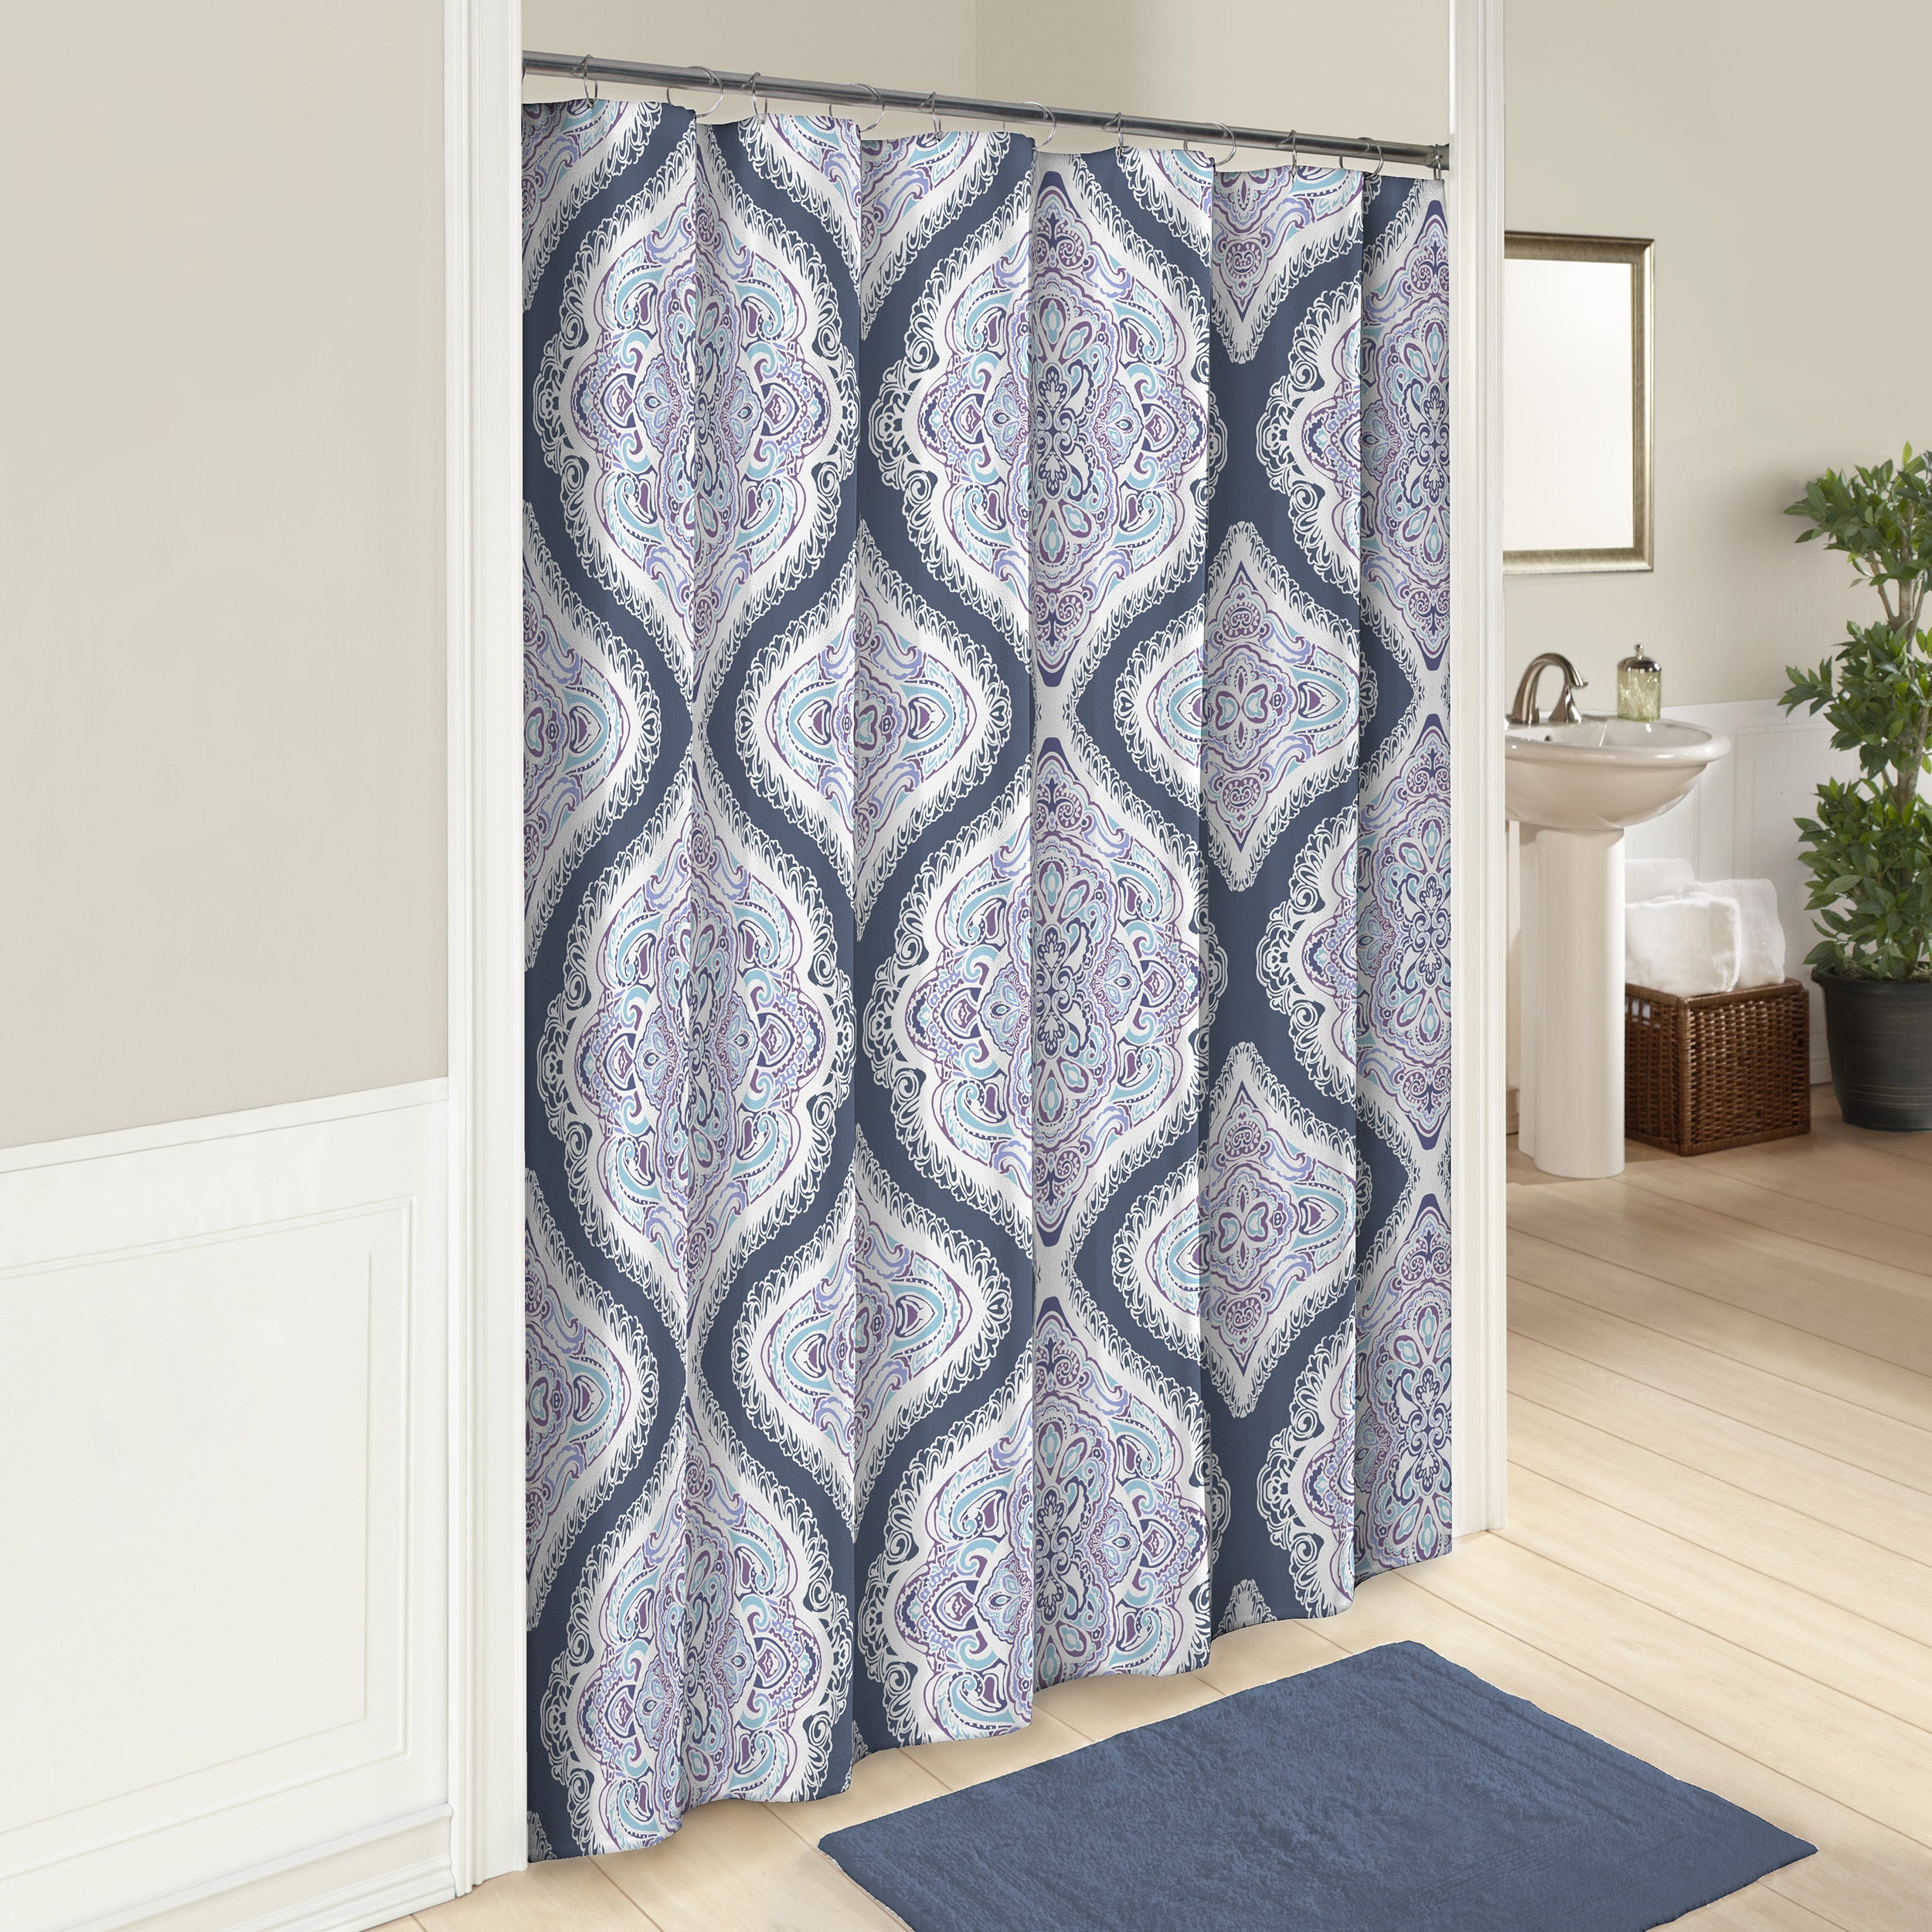 Shop Marble Hill Lotus Shower Curtain